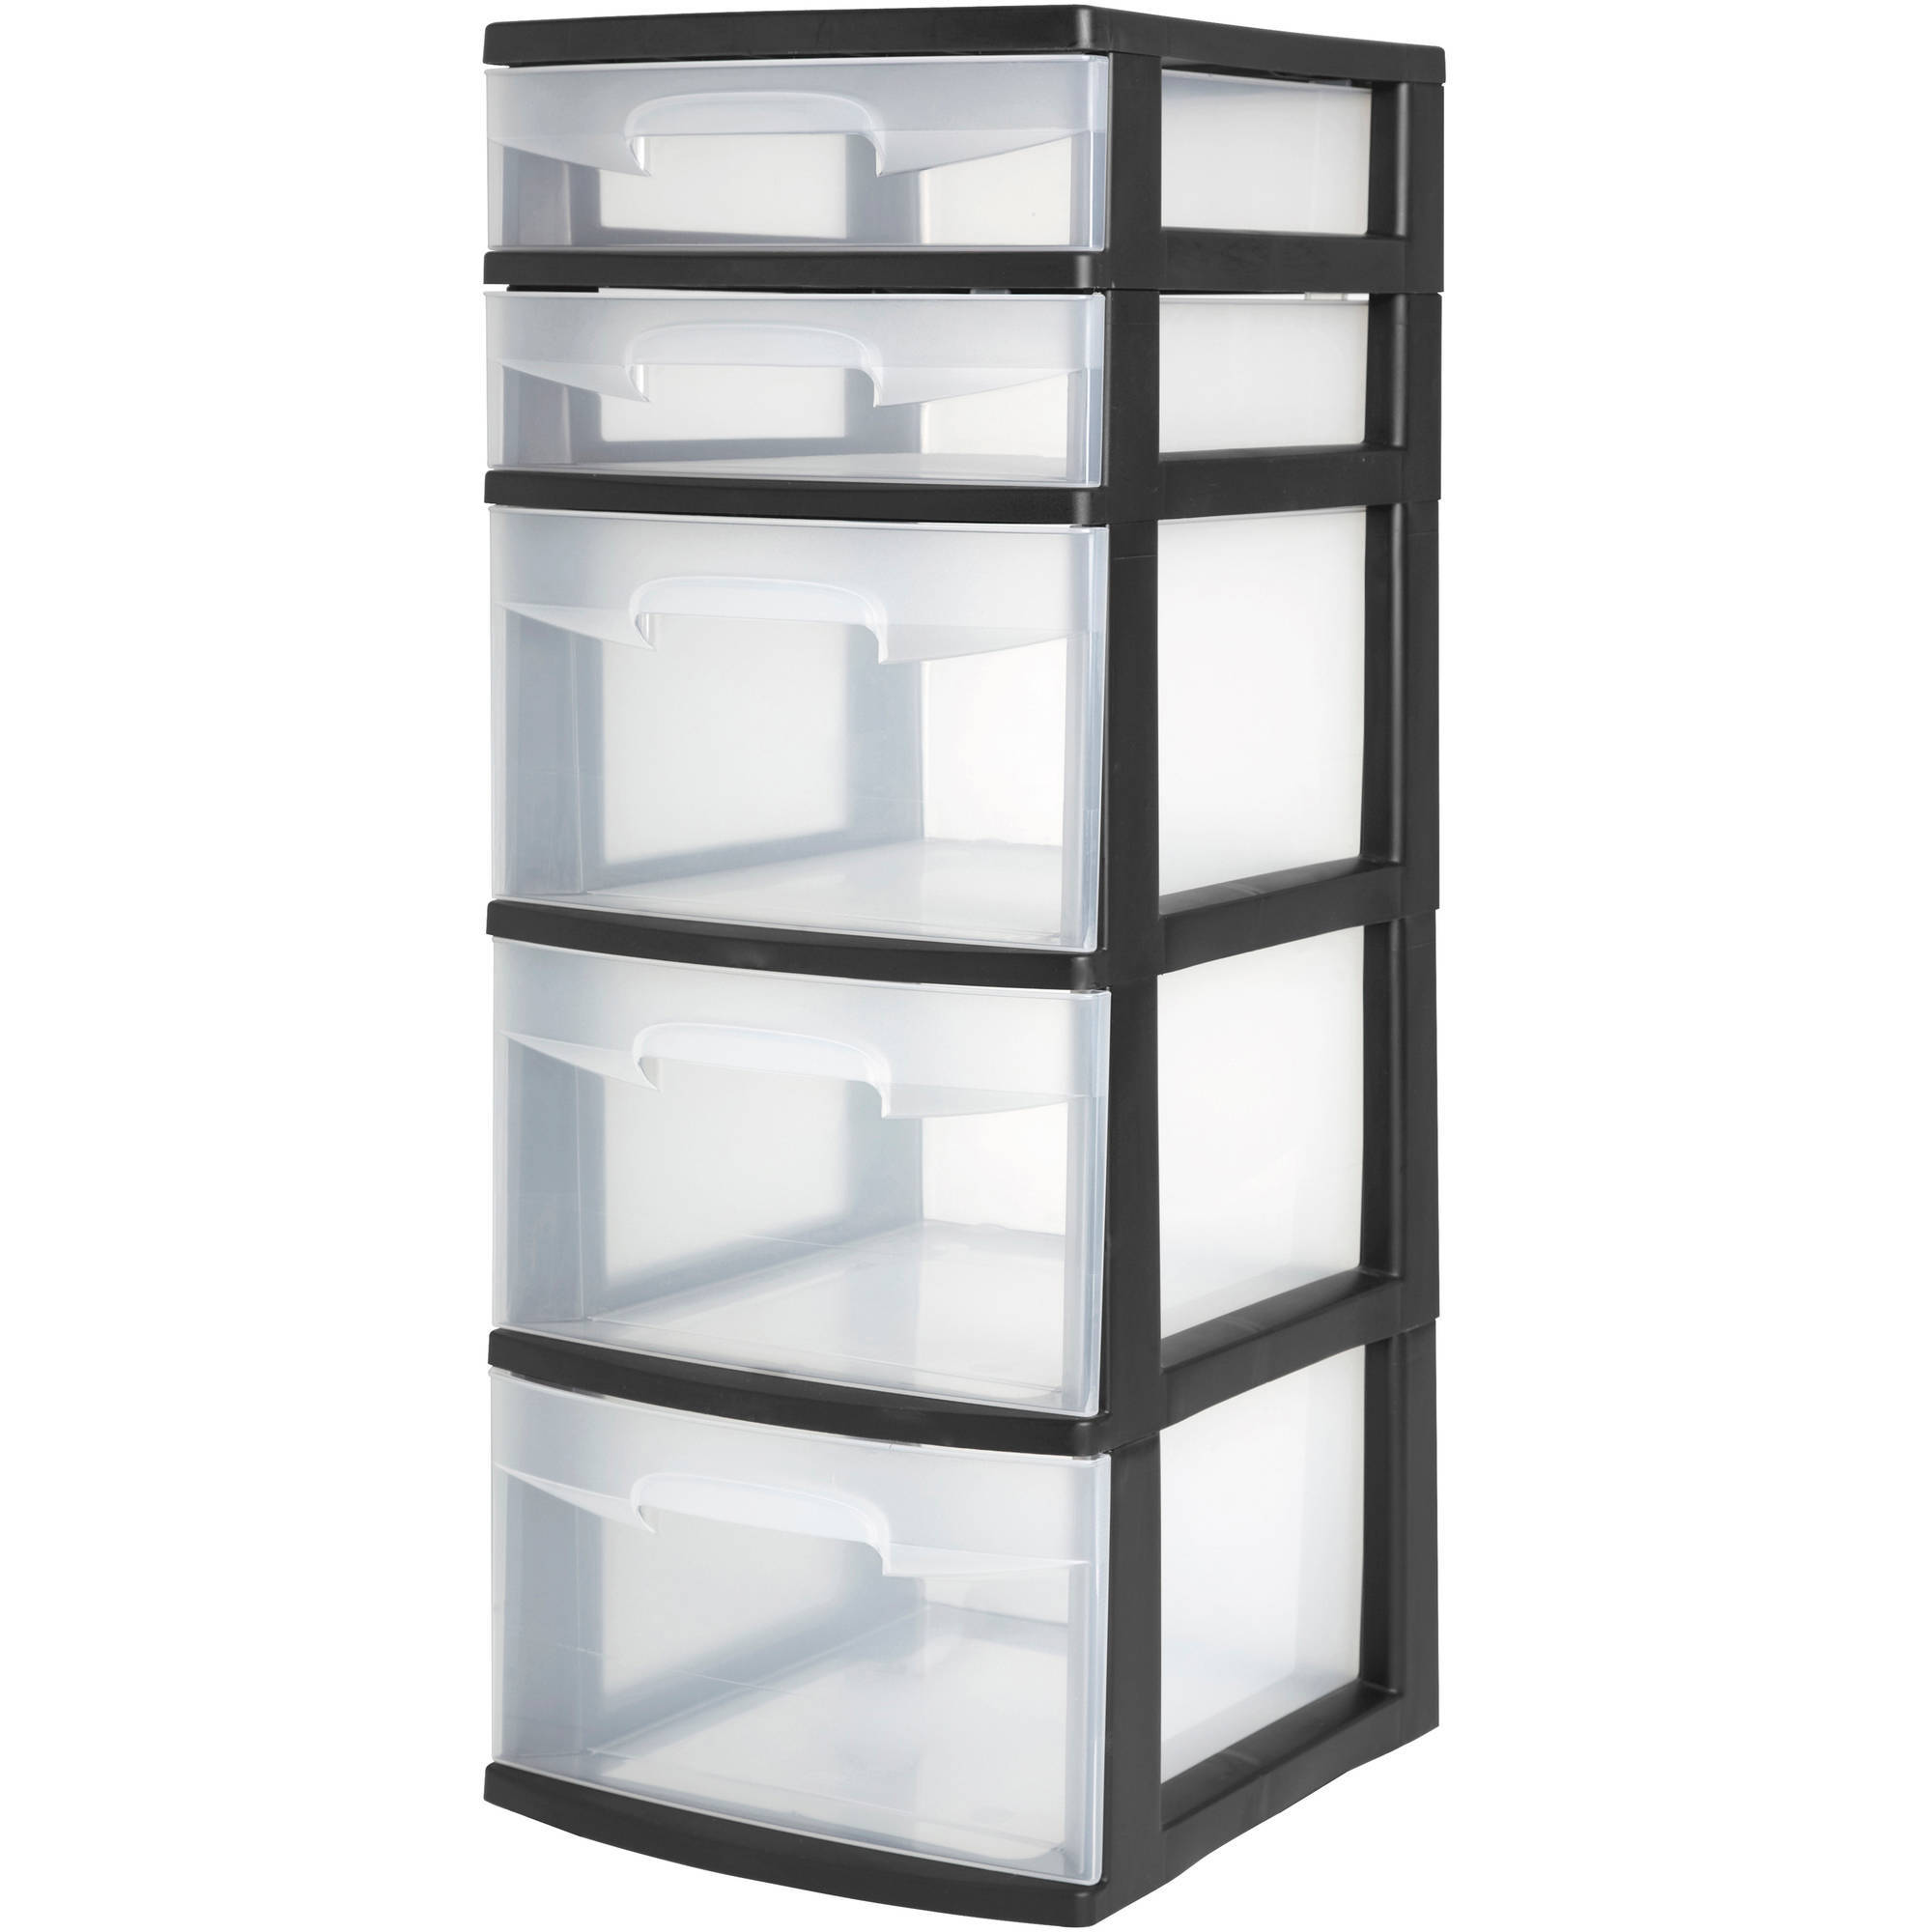 Sterilite 5 Drawer Tower- Black (Available in Case of 2 or Single Unit)